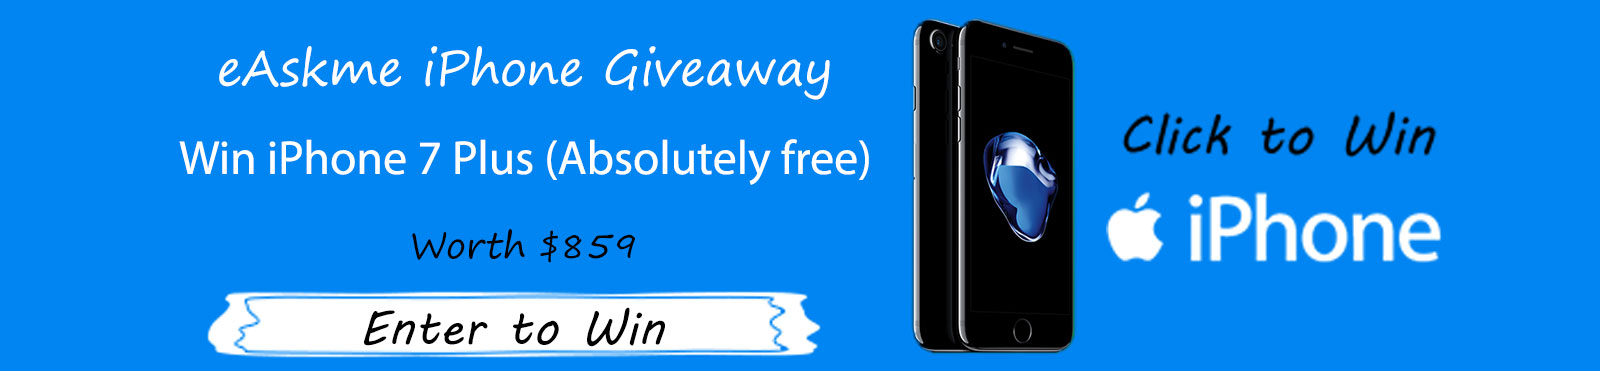 eAskme iPhone Giveaway